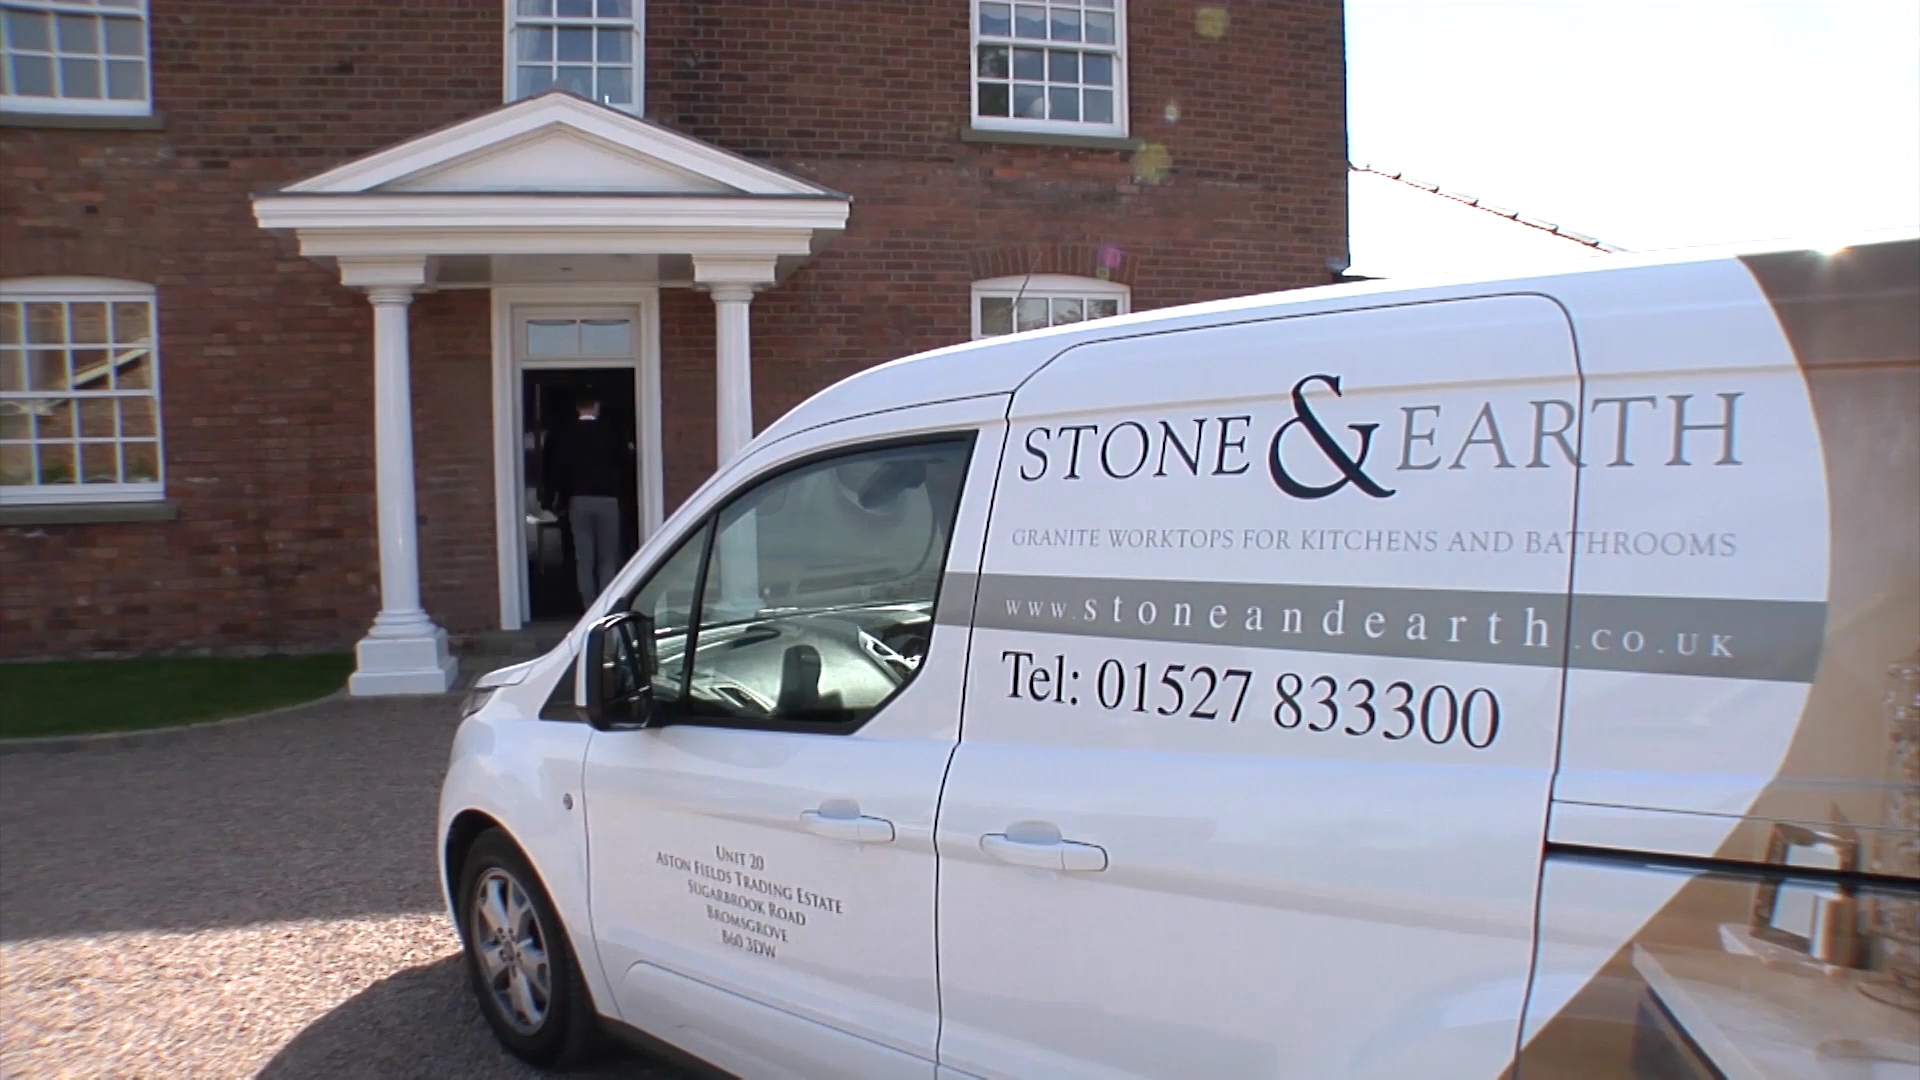 Stone & Earth Ltd